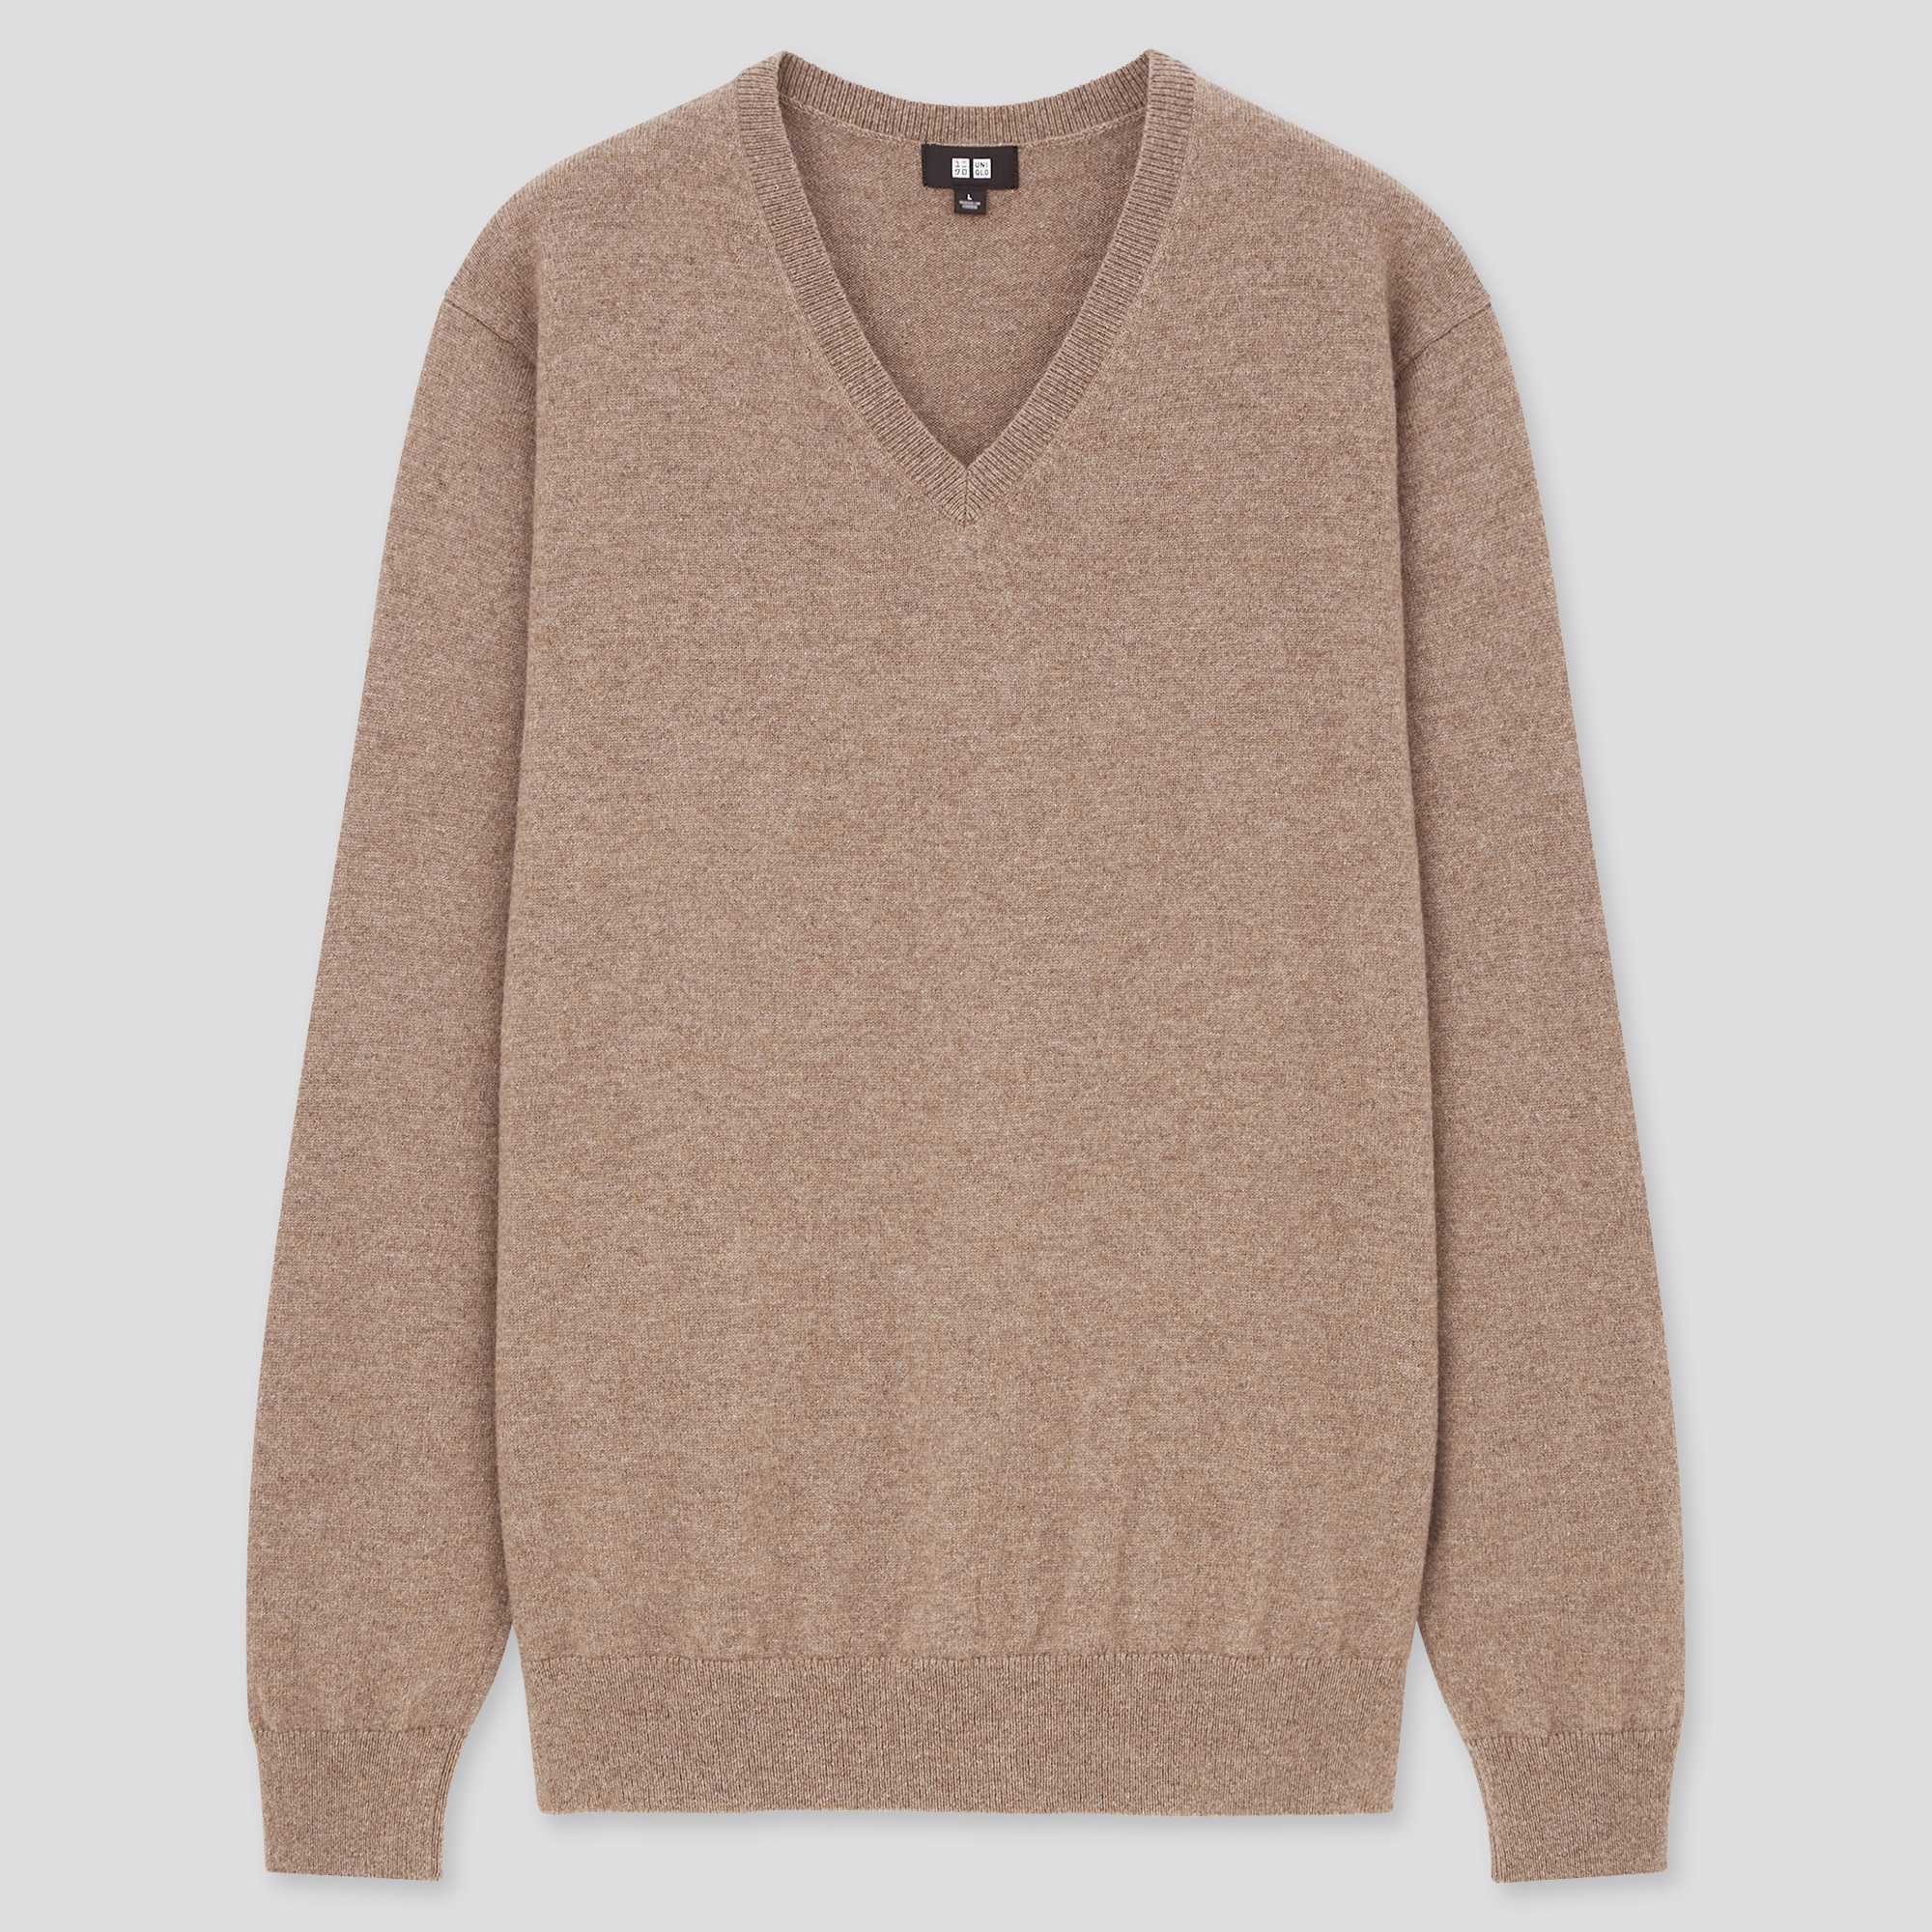 Men's Cashmere Sweaters | Turtlenecks, Cardigans, and More